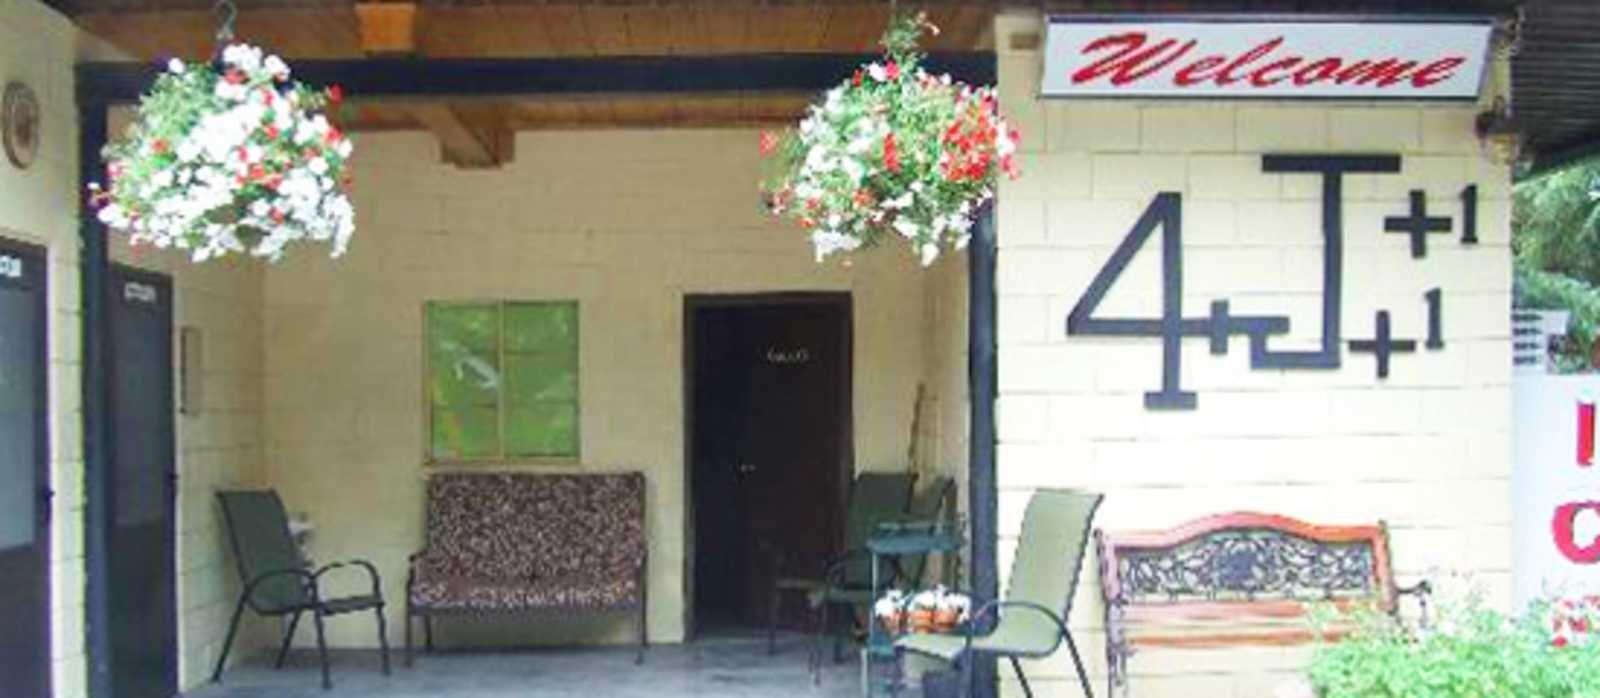 4J+1+1 RV Park in Ouray